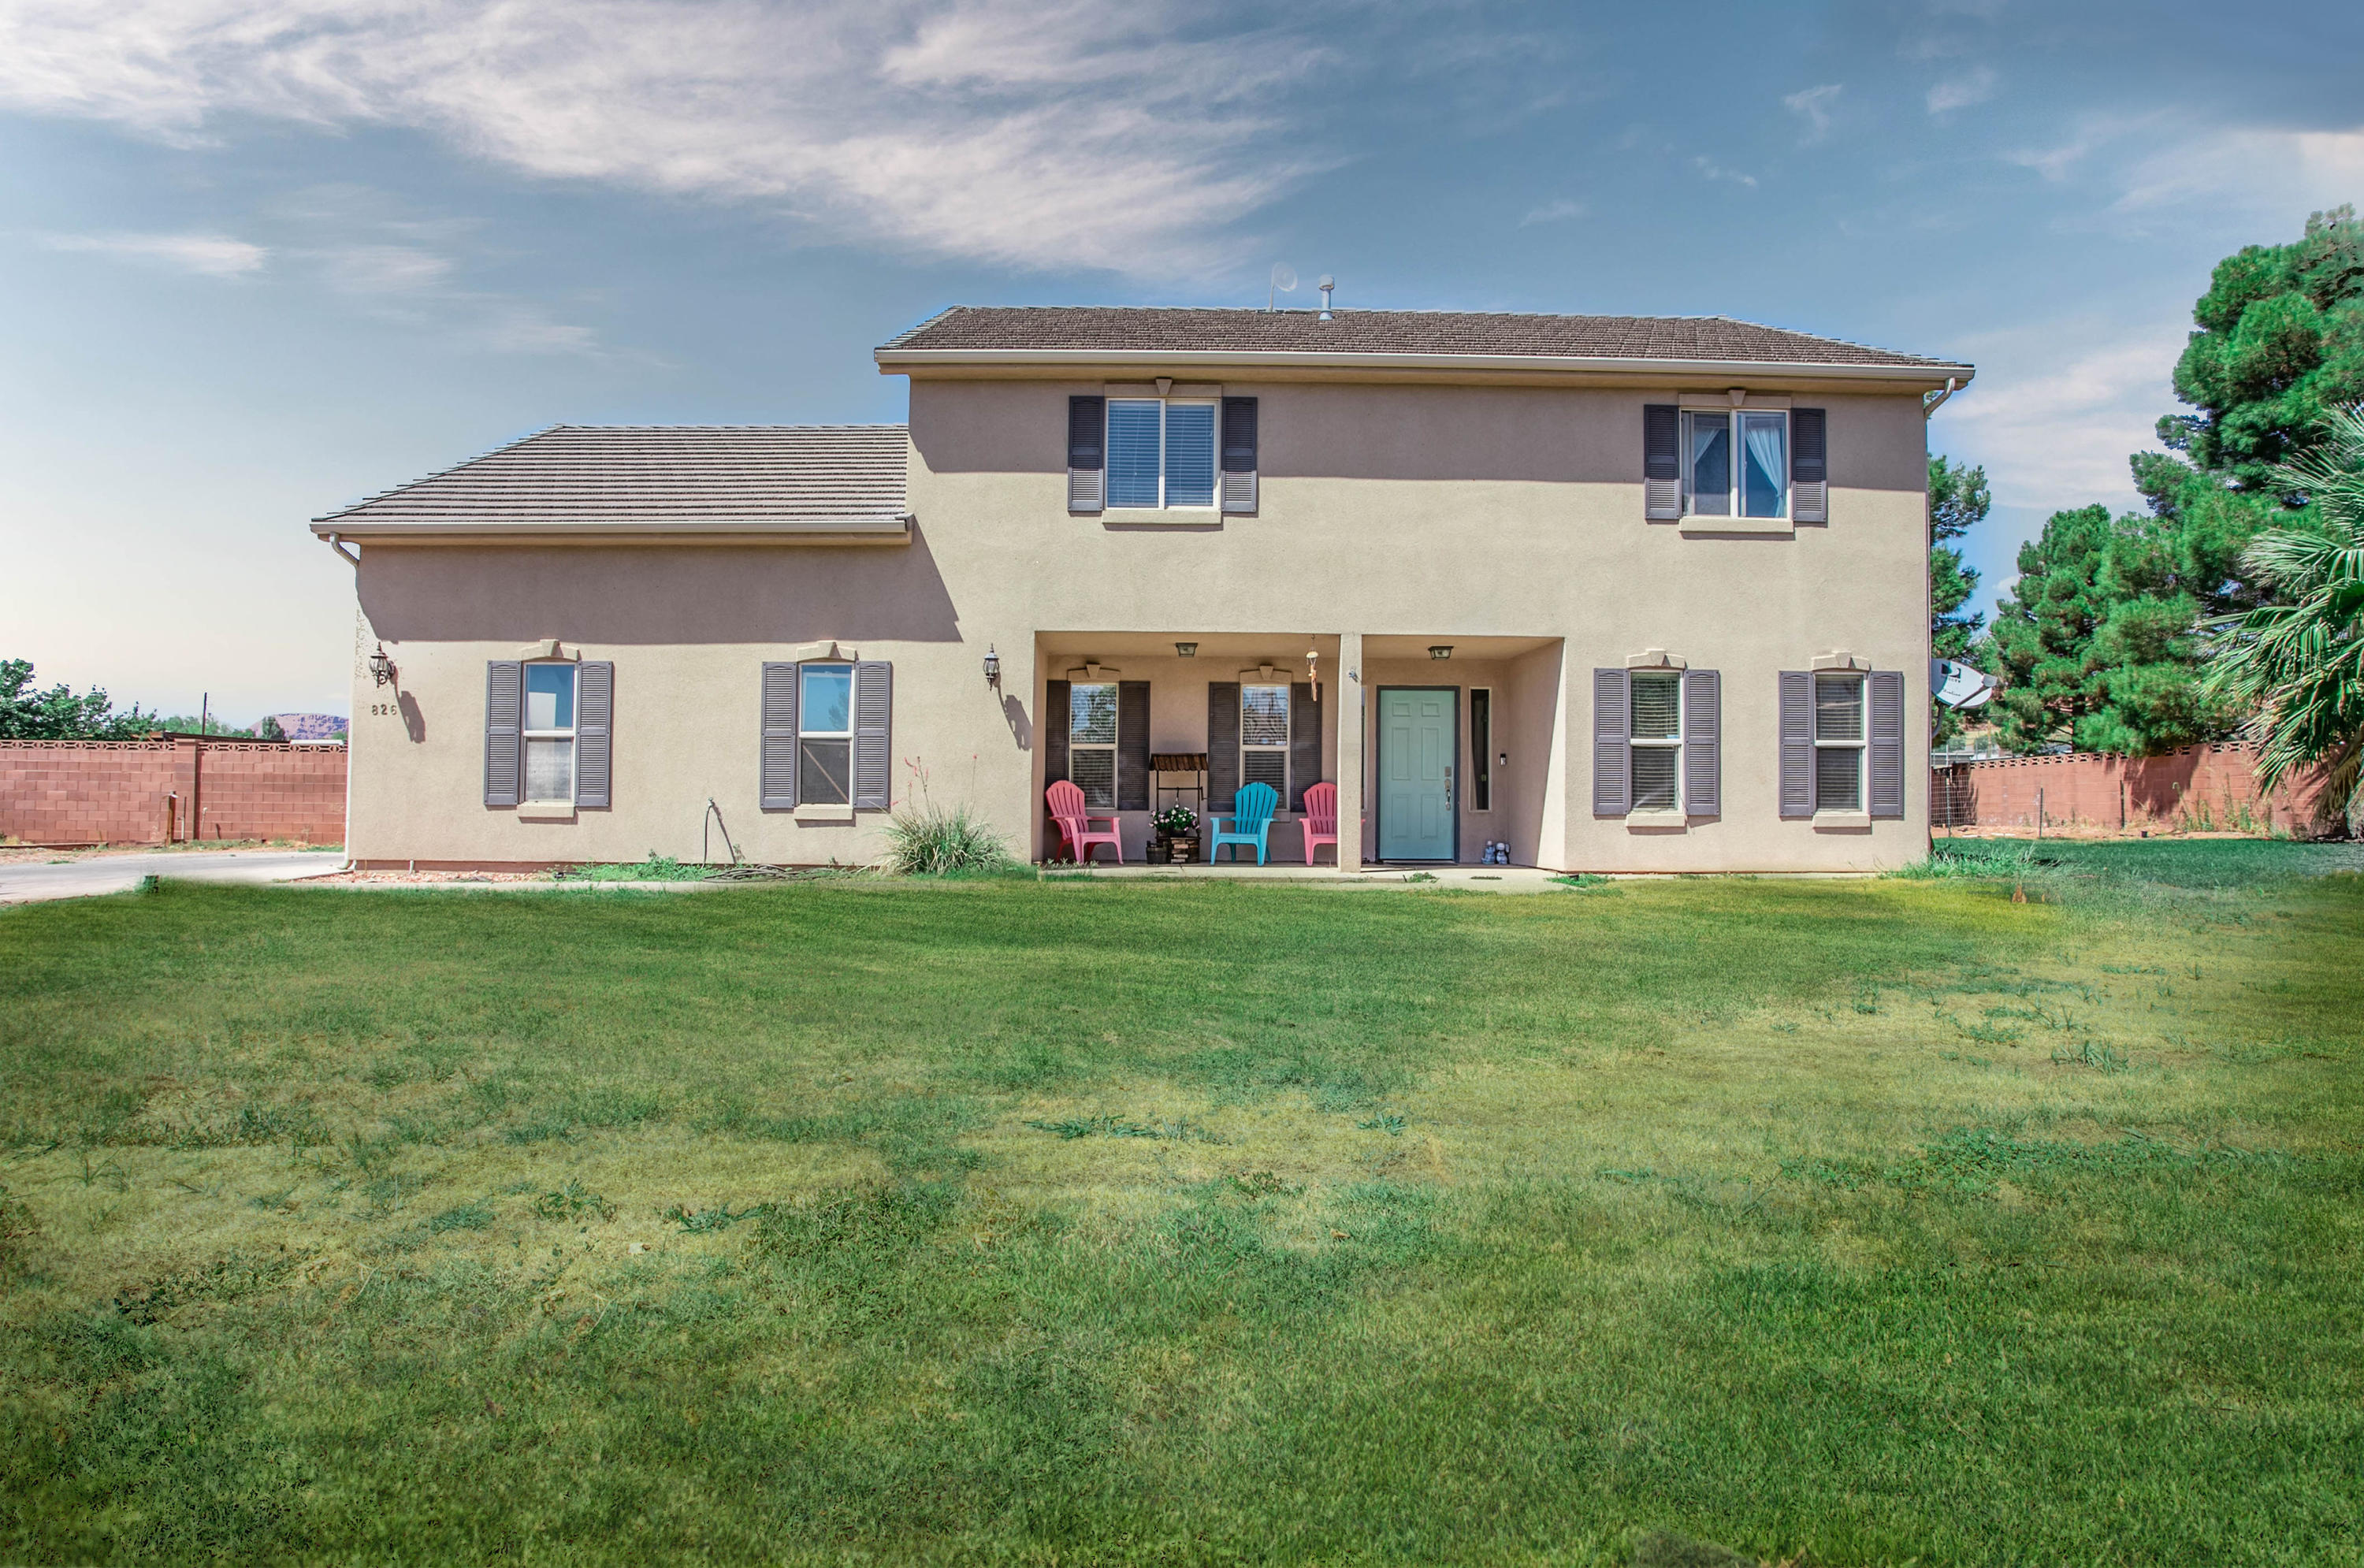 826 N 1110 W Cir, St George Ut 84770